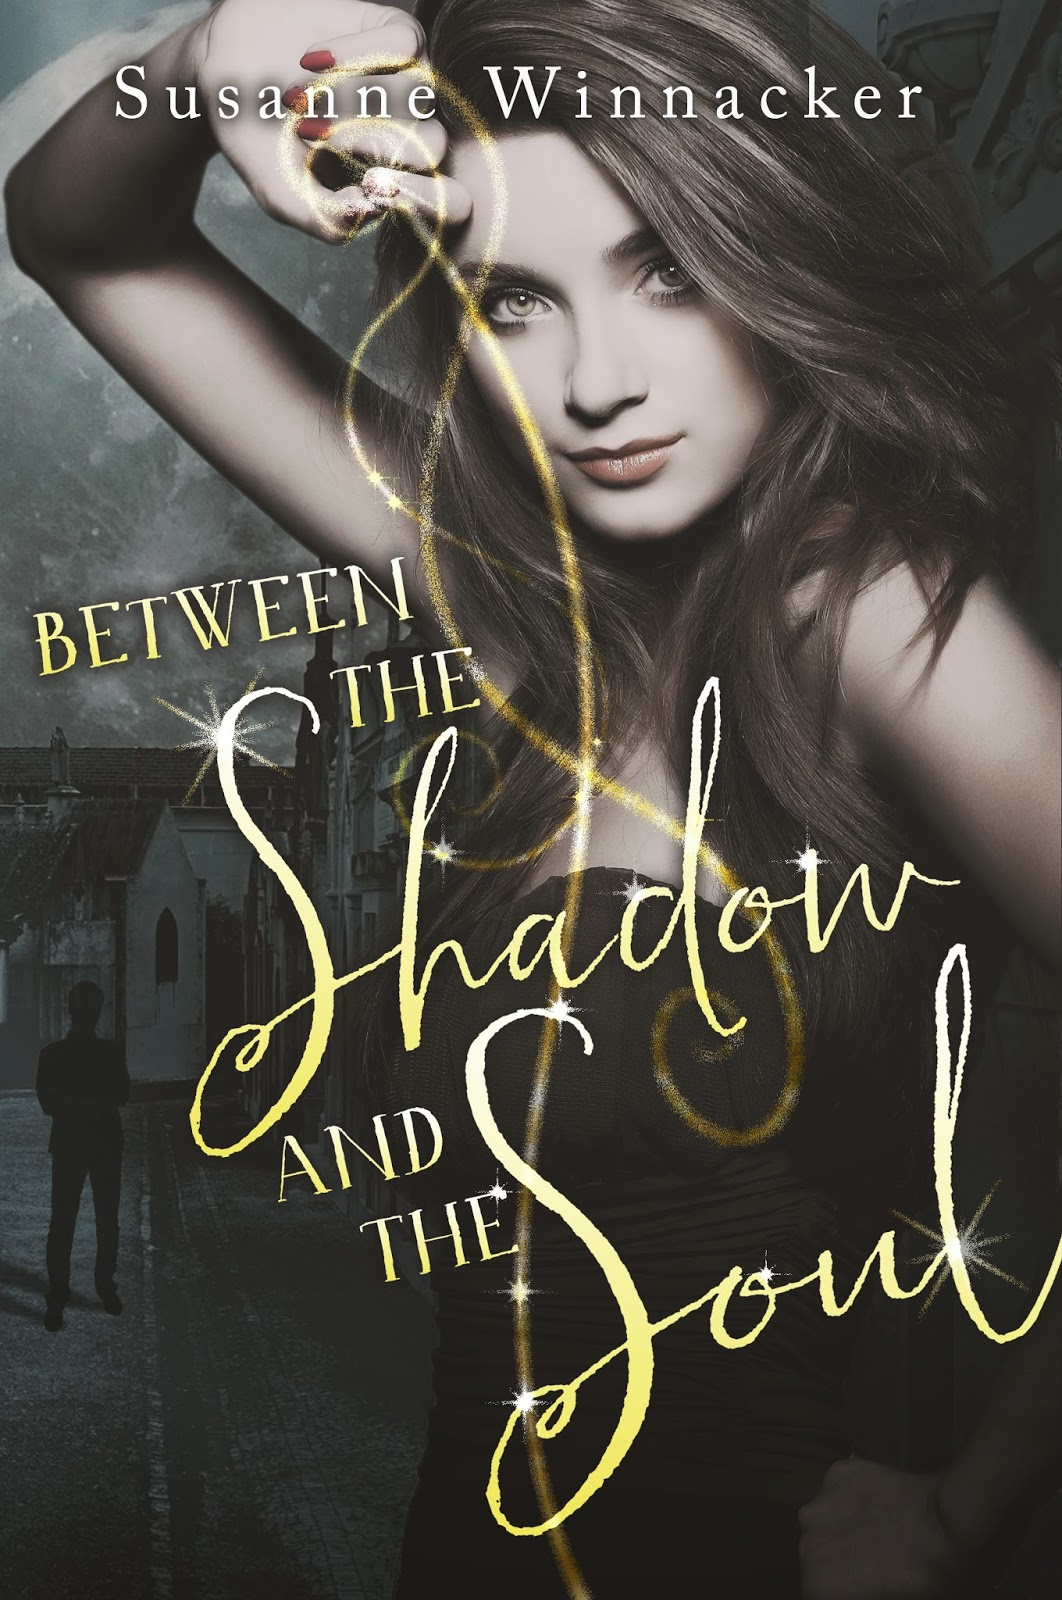 Review:  Between the Shadow and the Soul by Susanne Winnacker